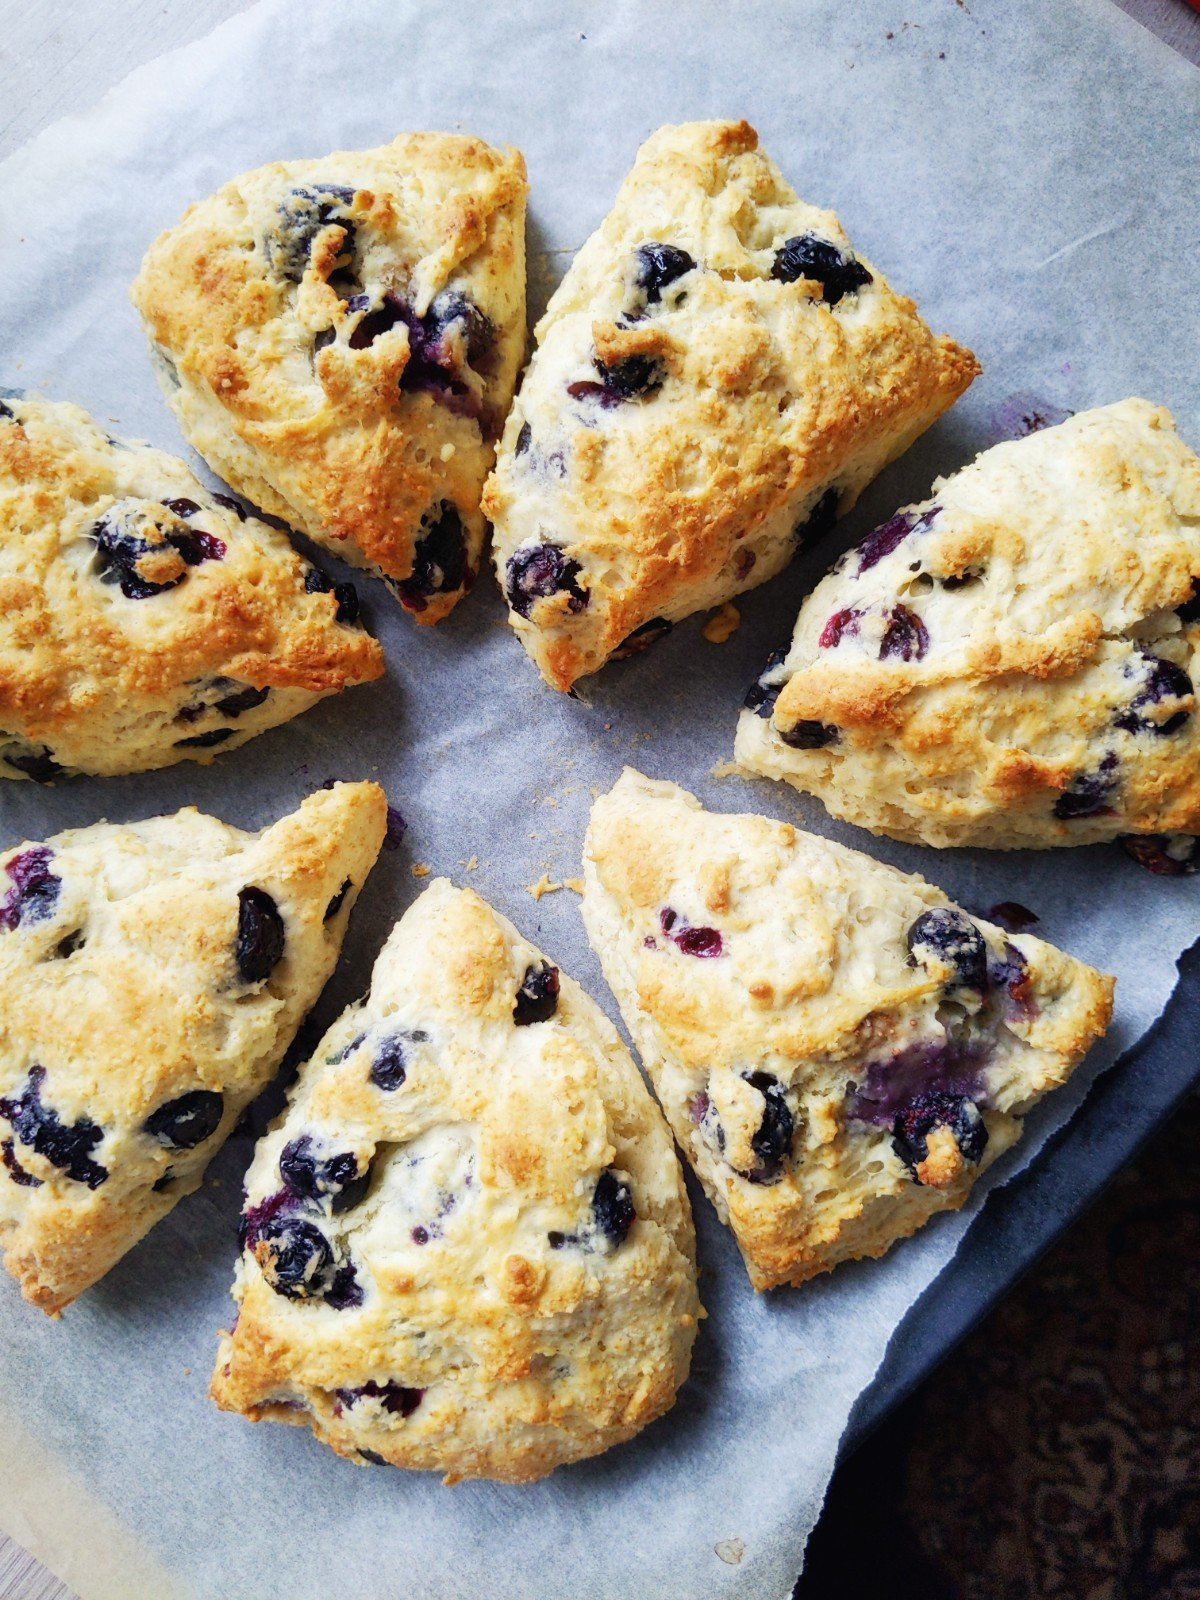 This easy scones recipe relies on a basic baking ratio that works every time.